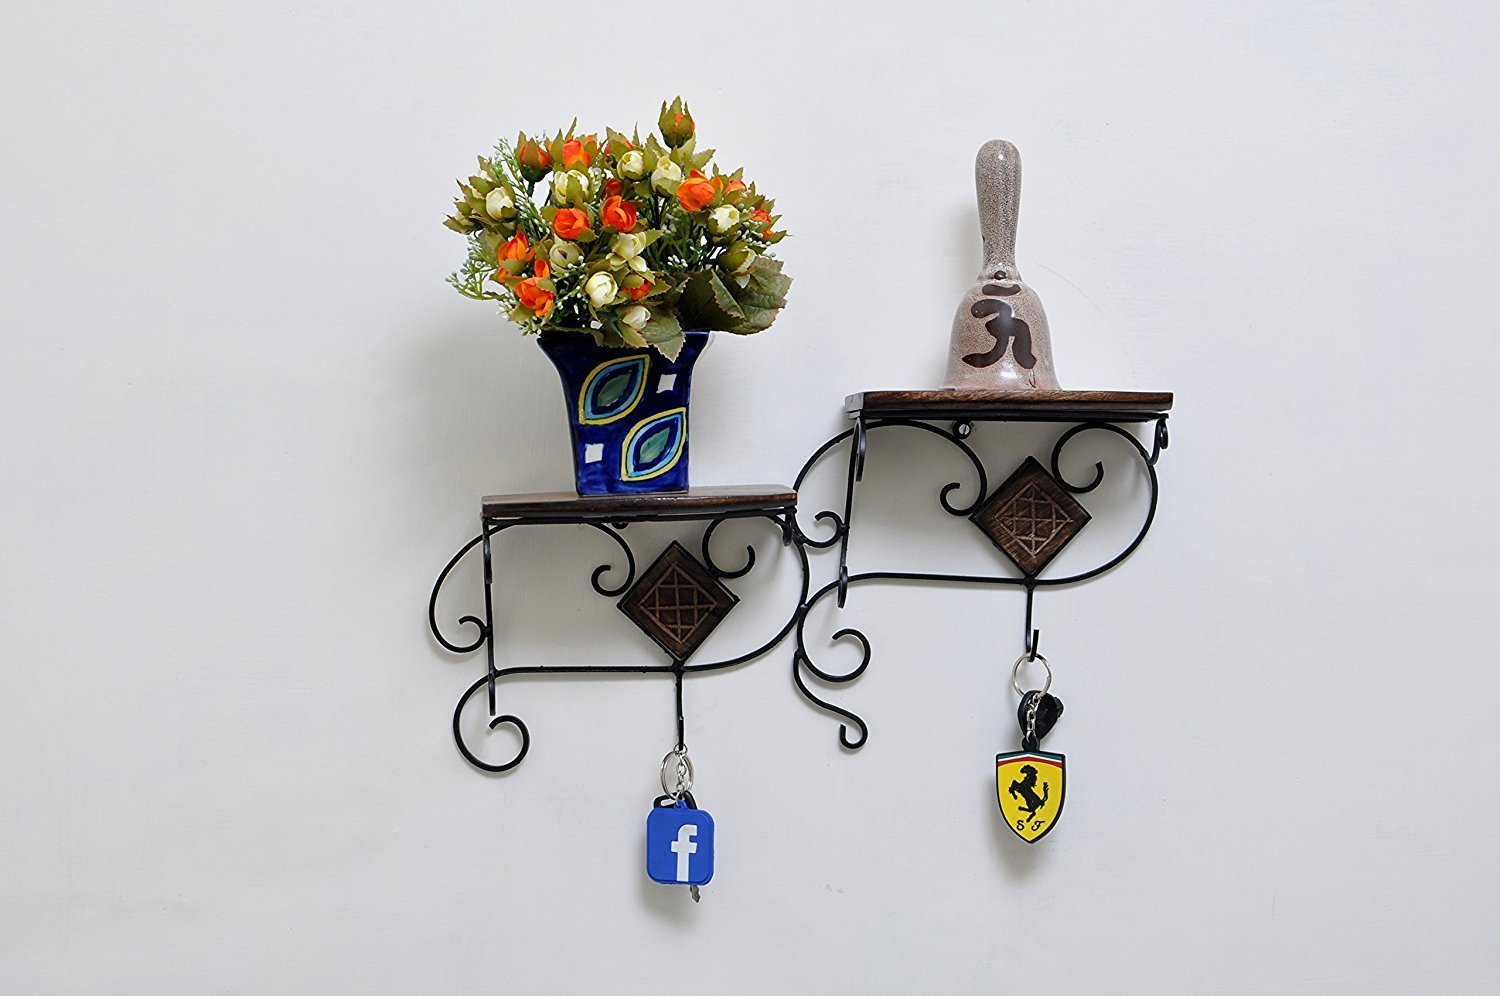 Buy Itos365 Handmade Wooden Antique Hand Carved Flower Vase For Living Room Decoration Ideas Home Decorative Items Brown Online At Low Prices In India Amazon In